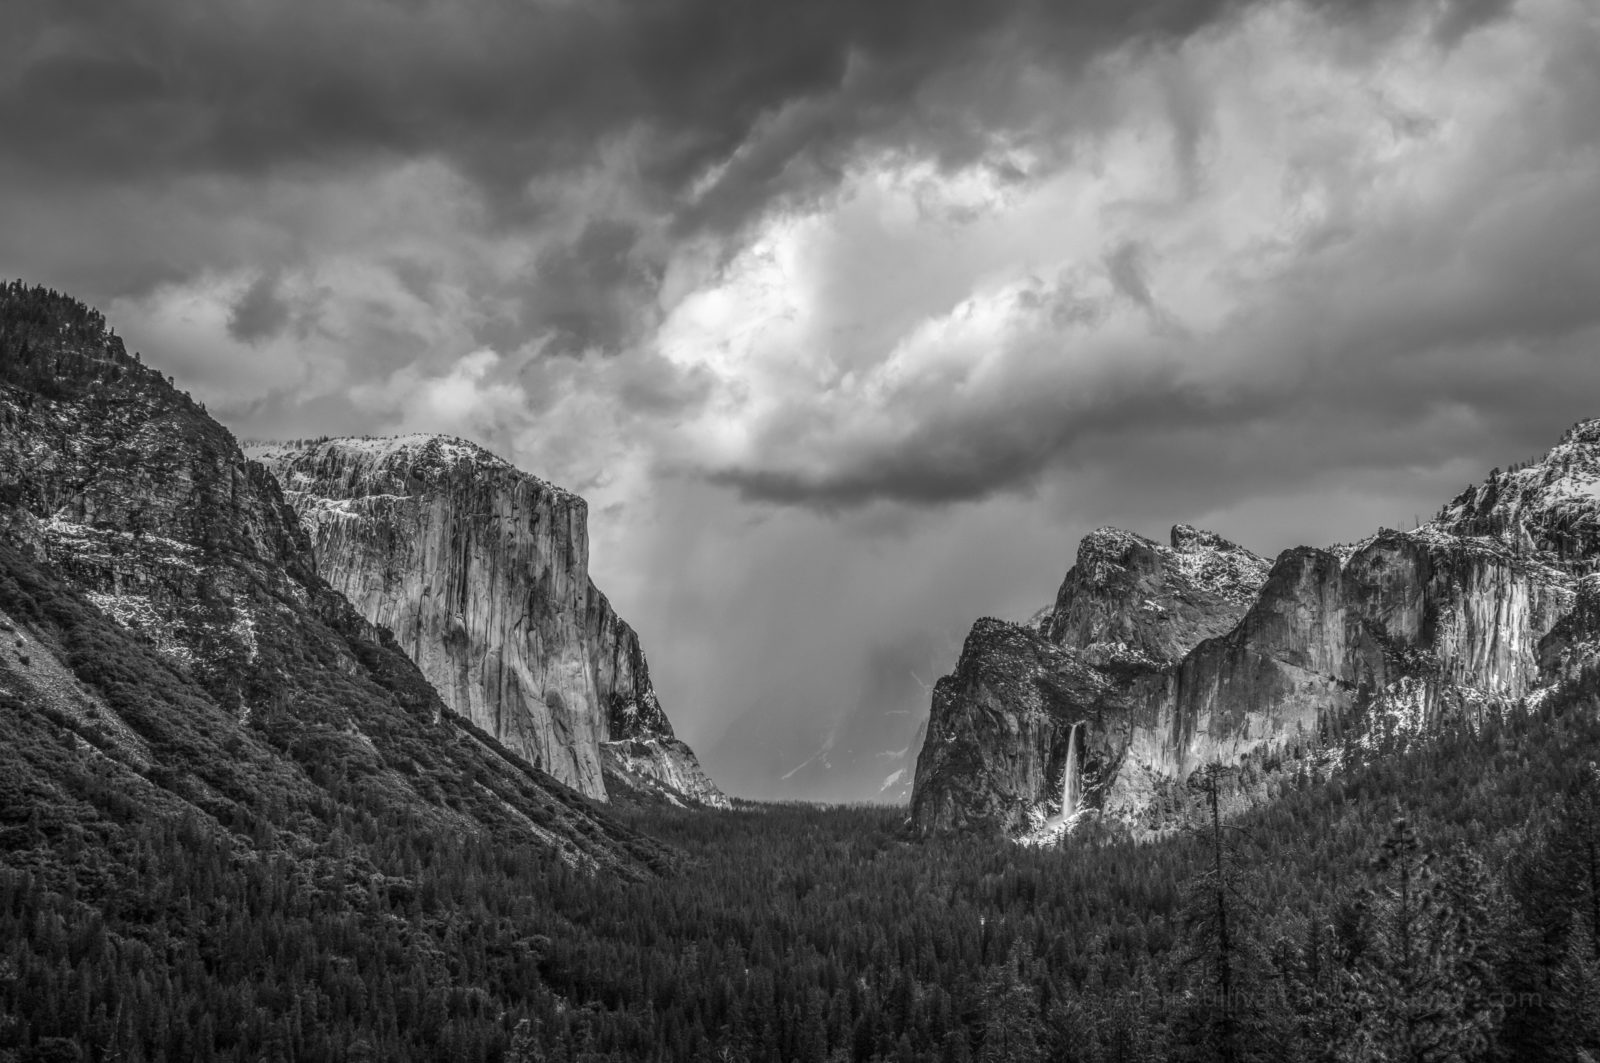 Snow Showers in Yosemite Valley